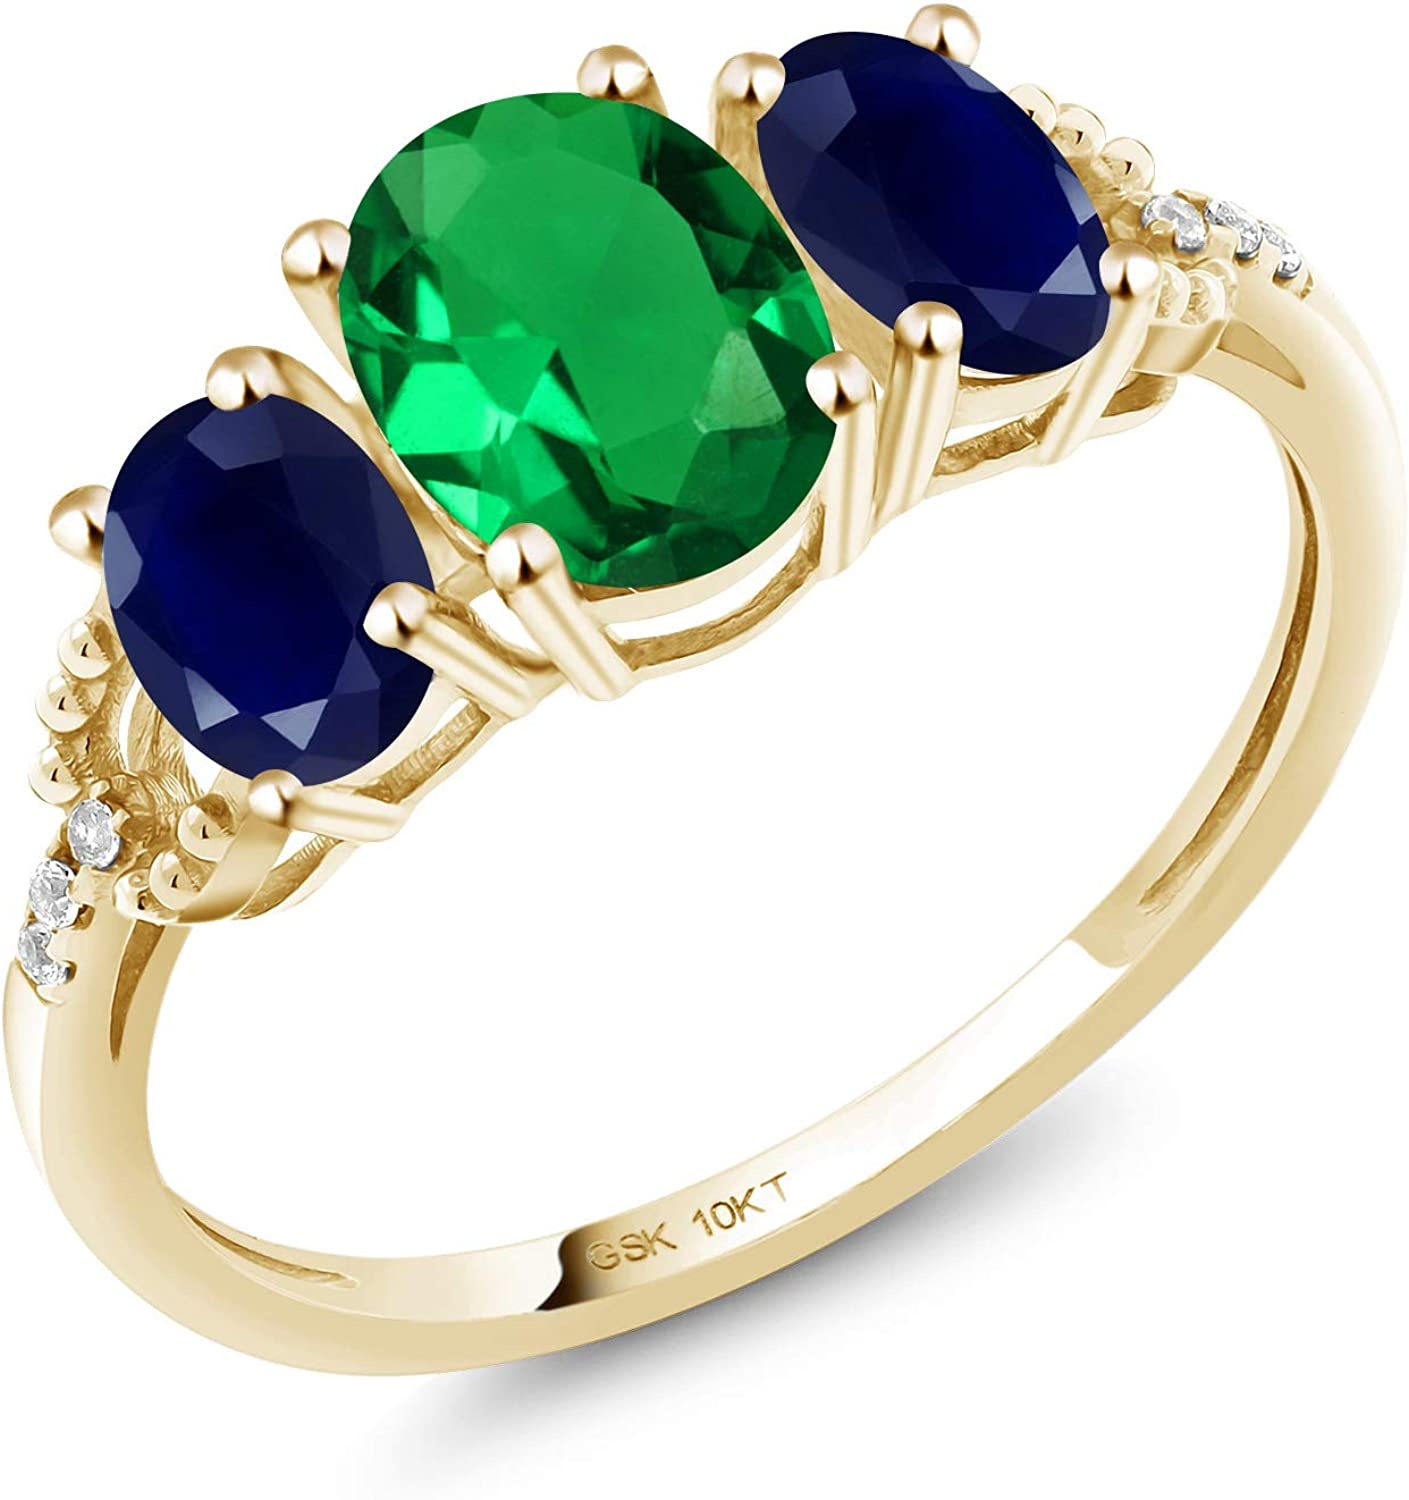 Gem Stone King 10K Yellow Gold Engagement Ring 1.72 Ct Oval Green Simulated Emerald Blue Sapphire